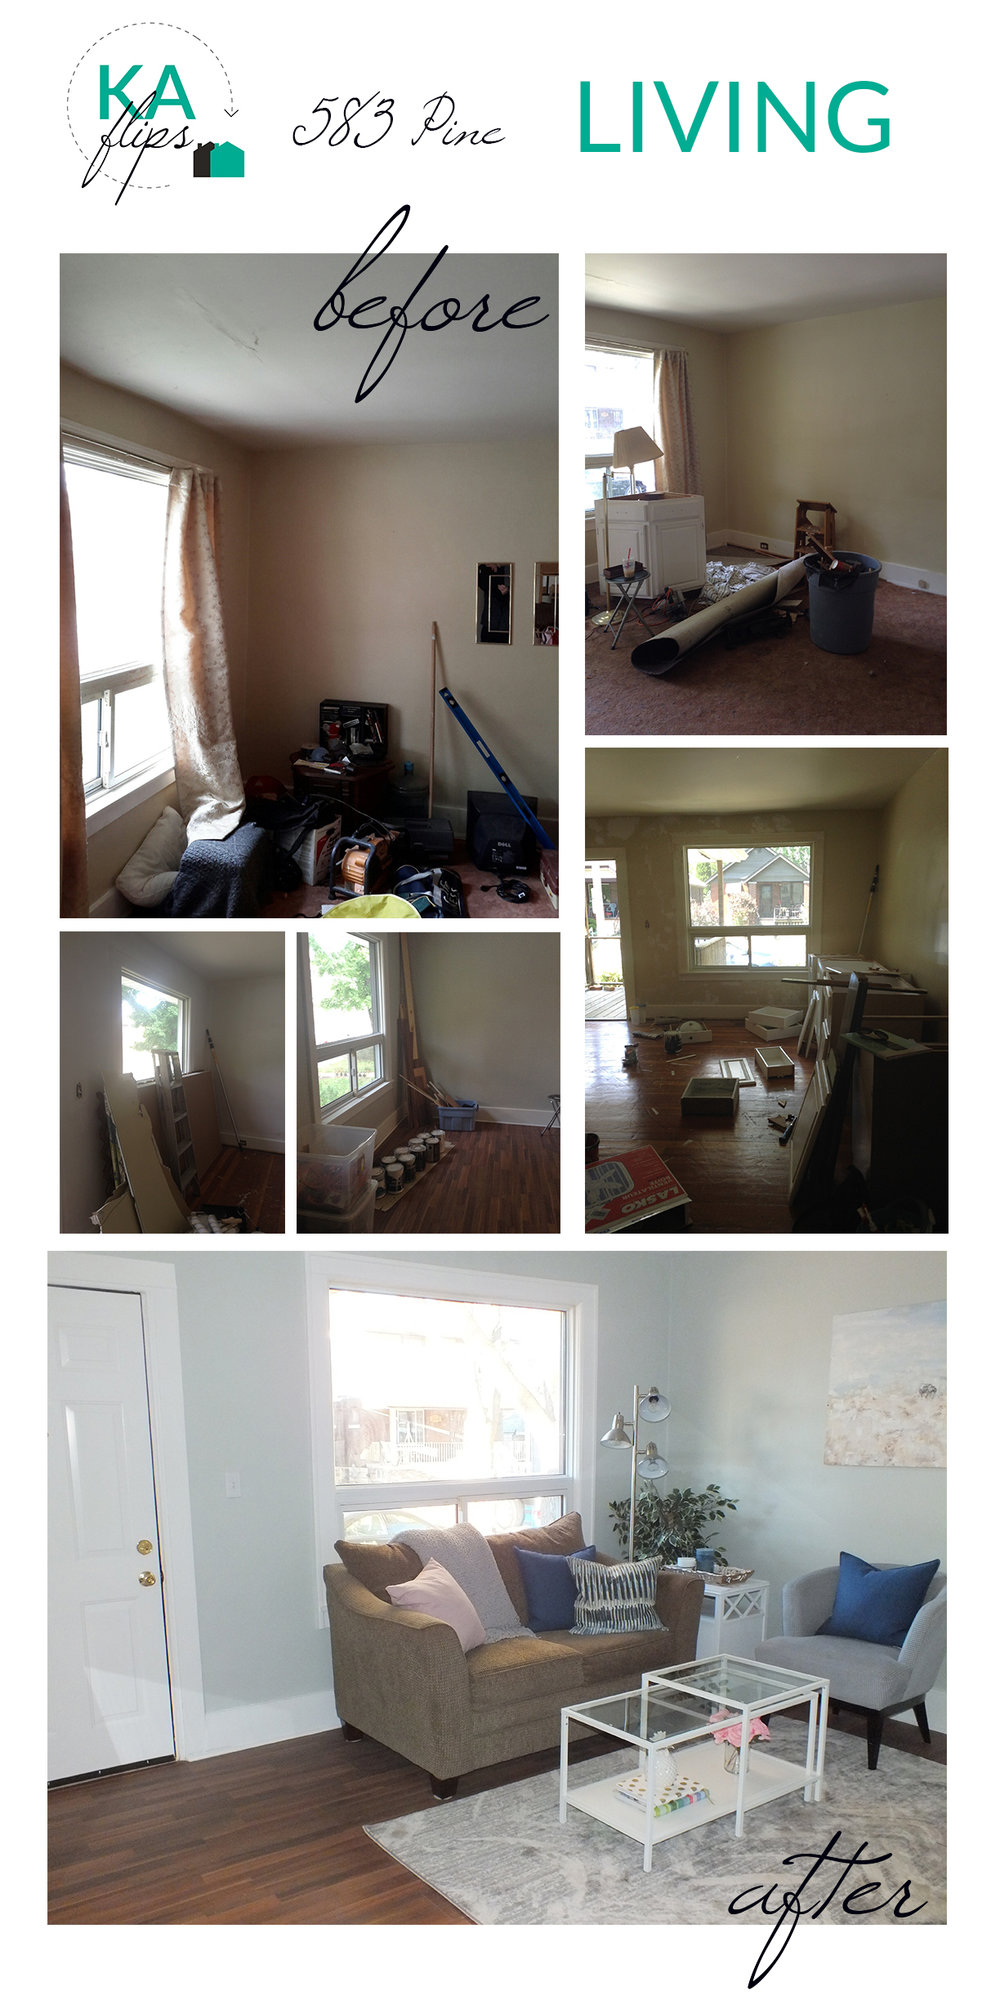 House Flip - Pine St - Living Room - Before and After